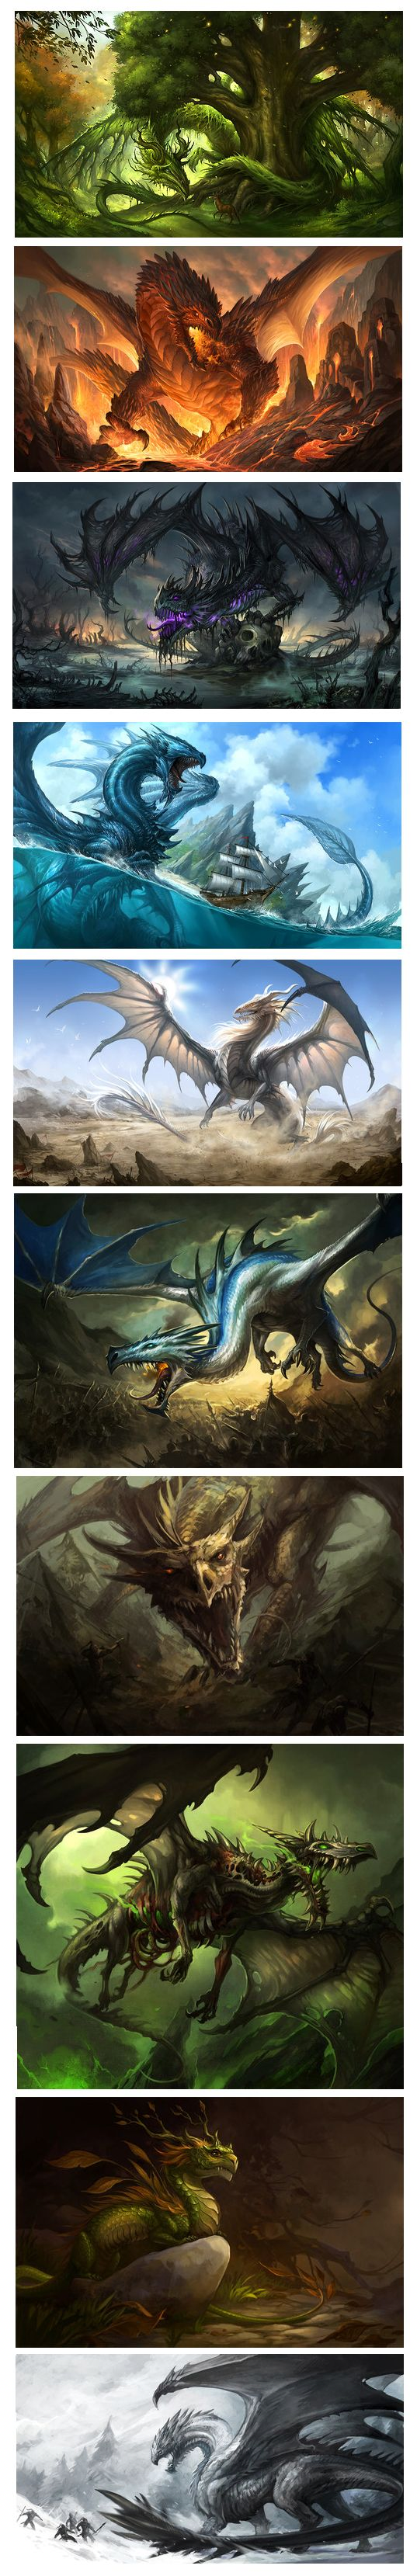 Dragons. These are super cool! Except for the scary zombie dragon. That is not cool.<< That's not only cool, it's awesome